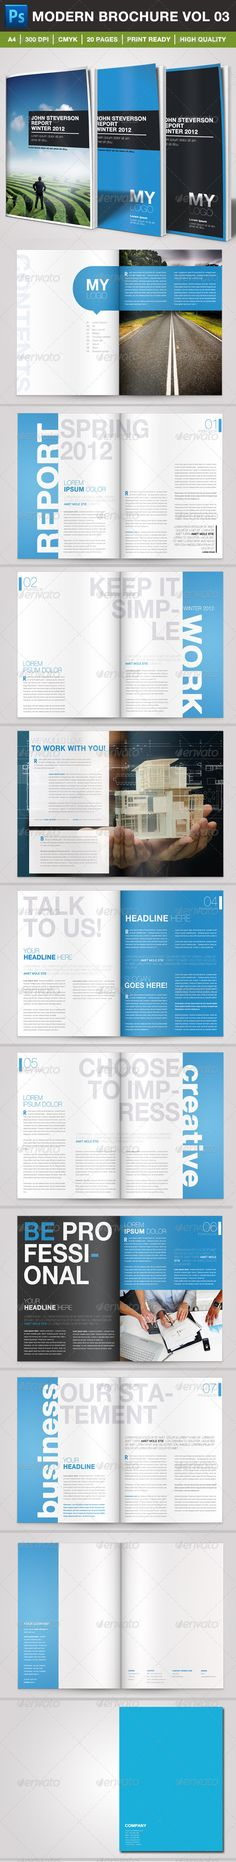 1307 best minimalist brochure template images on pinterest